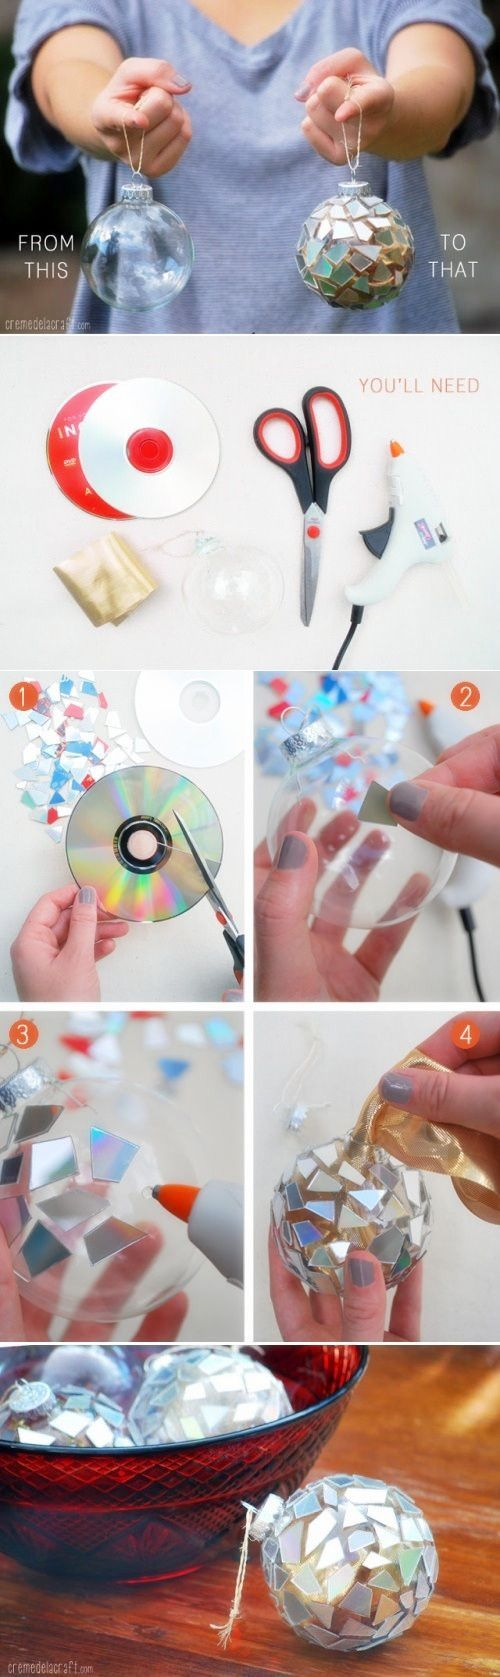 DIY: Mosaic Ornaments from CDs: